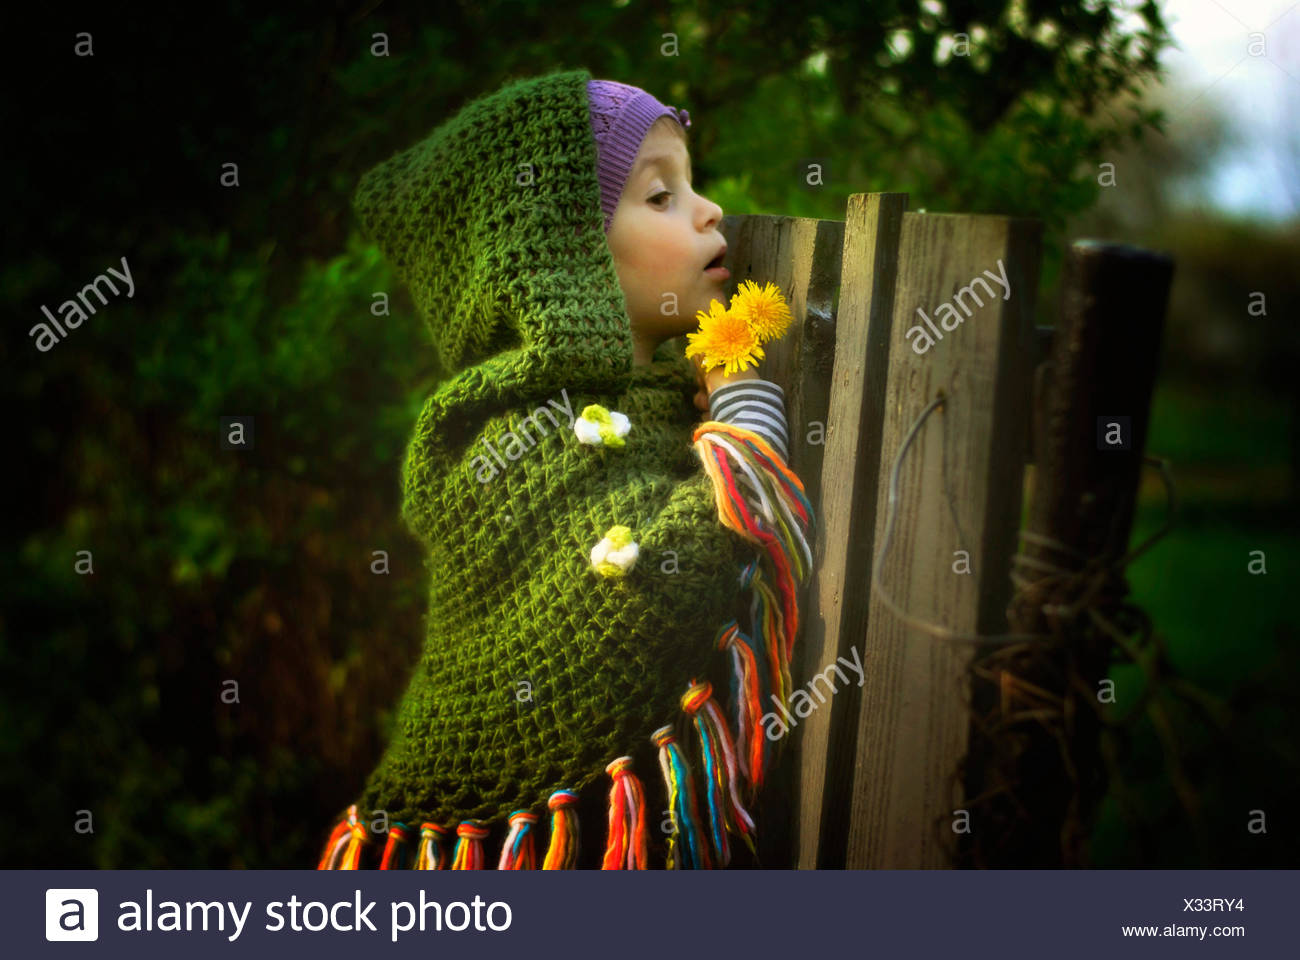 Young girl looking over fence - Stock Image